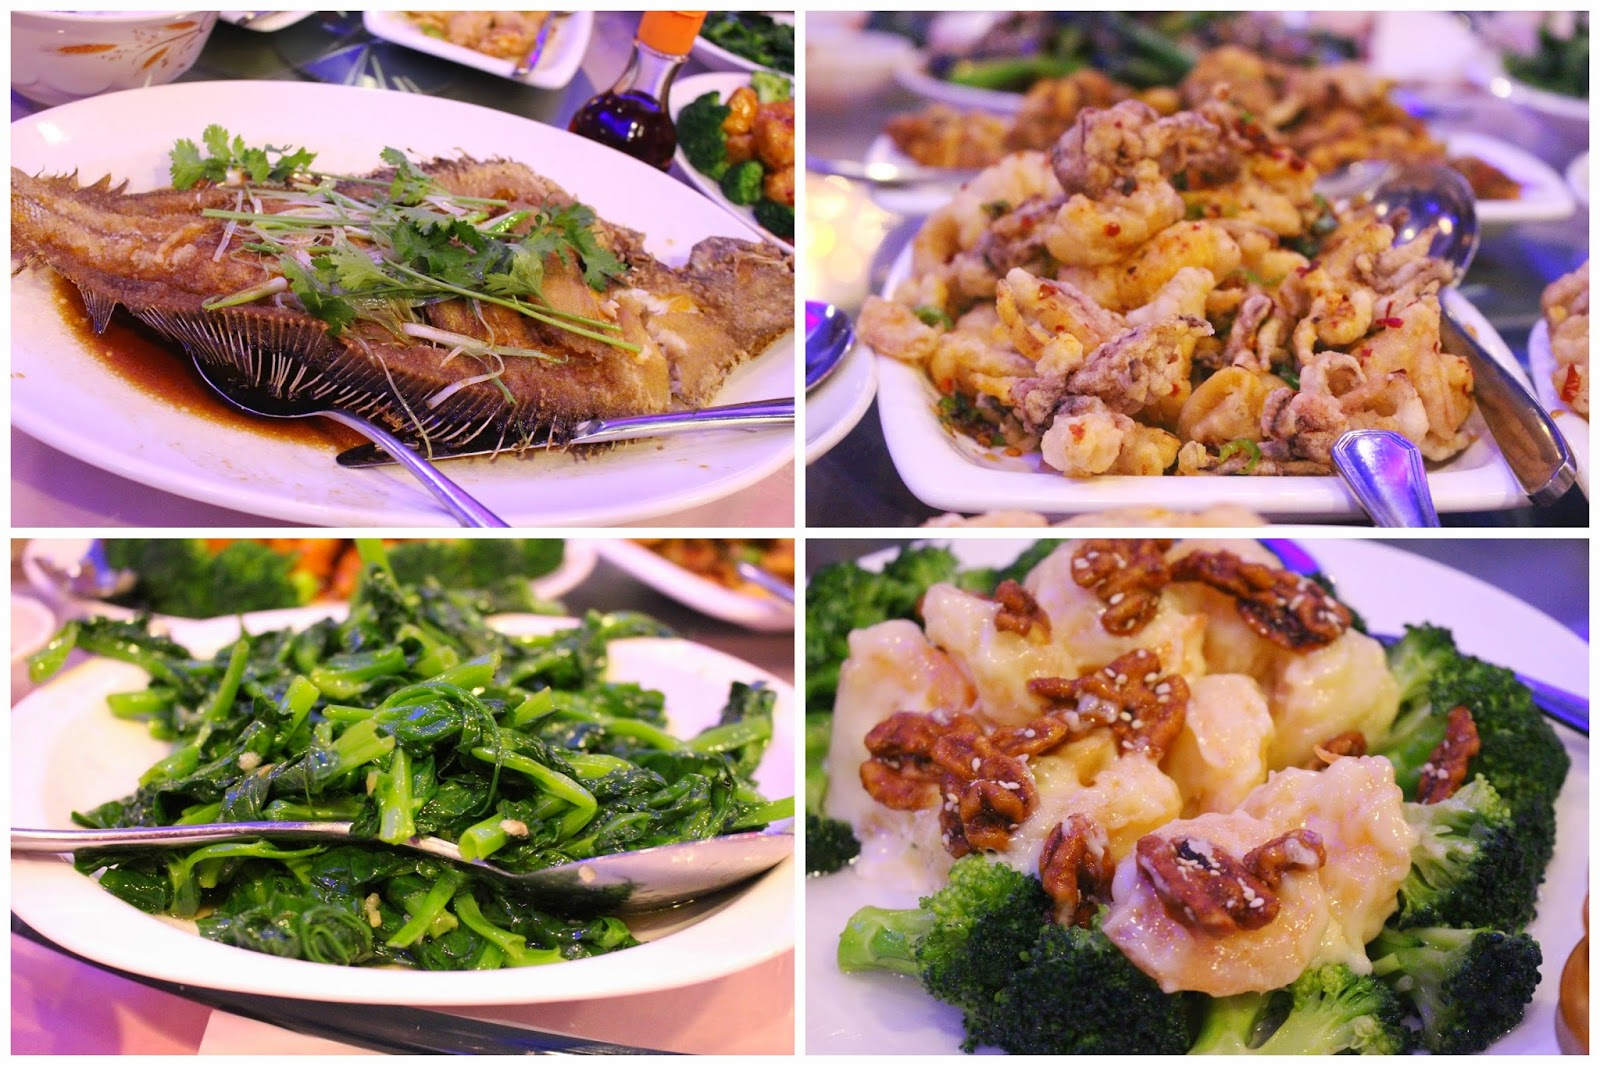 Food Eating Behavior And Culture In Chinese Society